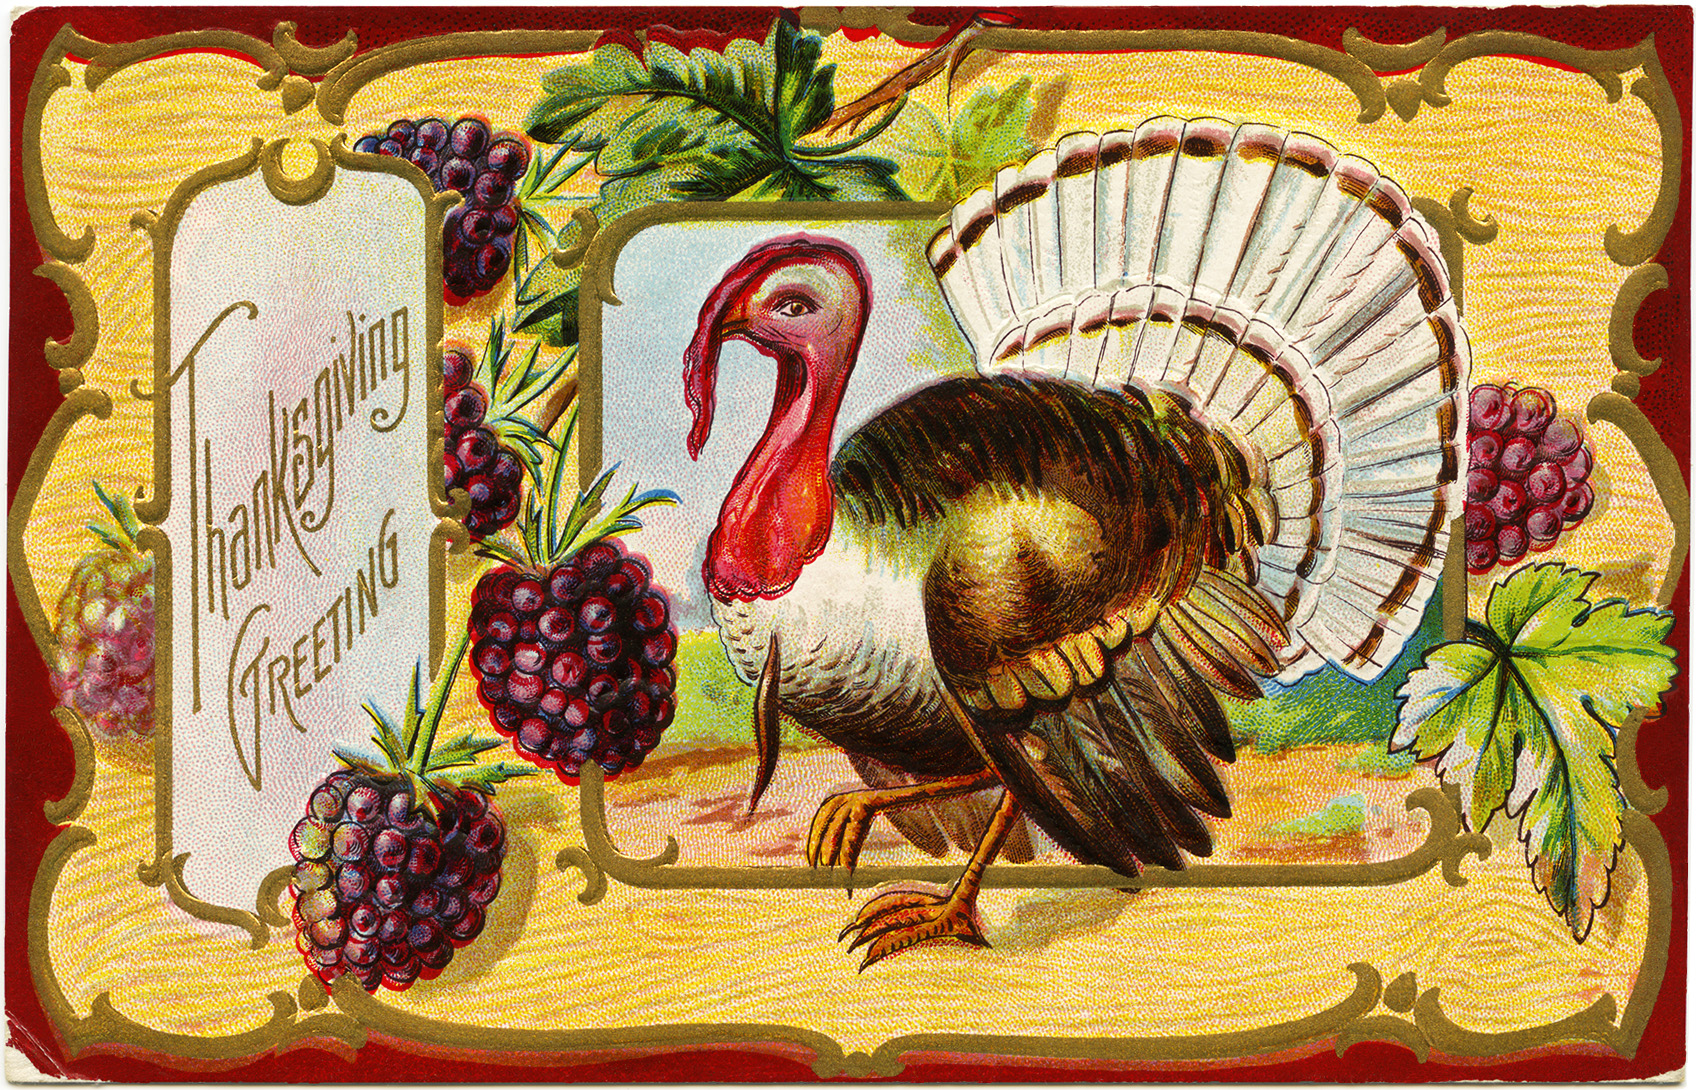 Thanksgiving Turkey Postcard ~ Free Vintage Image - Old ...